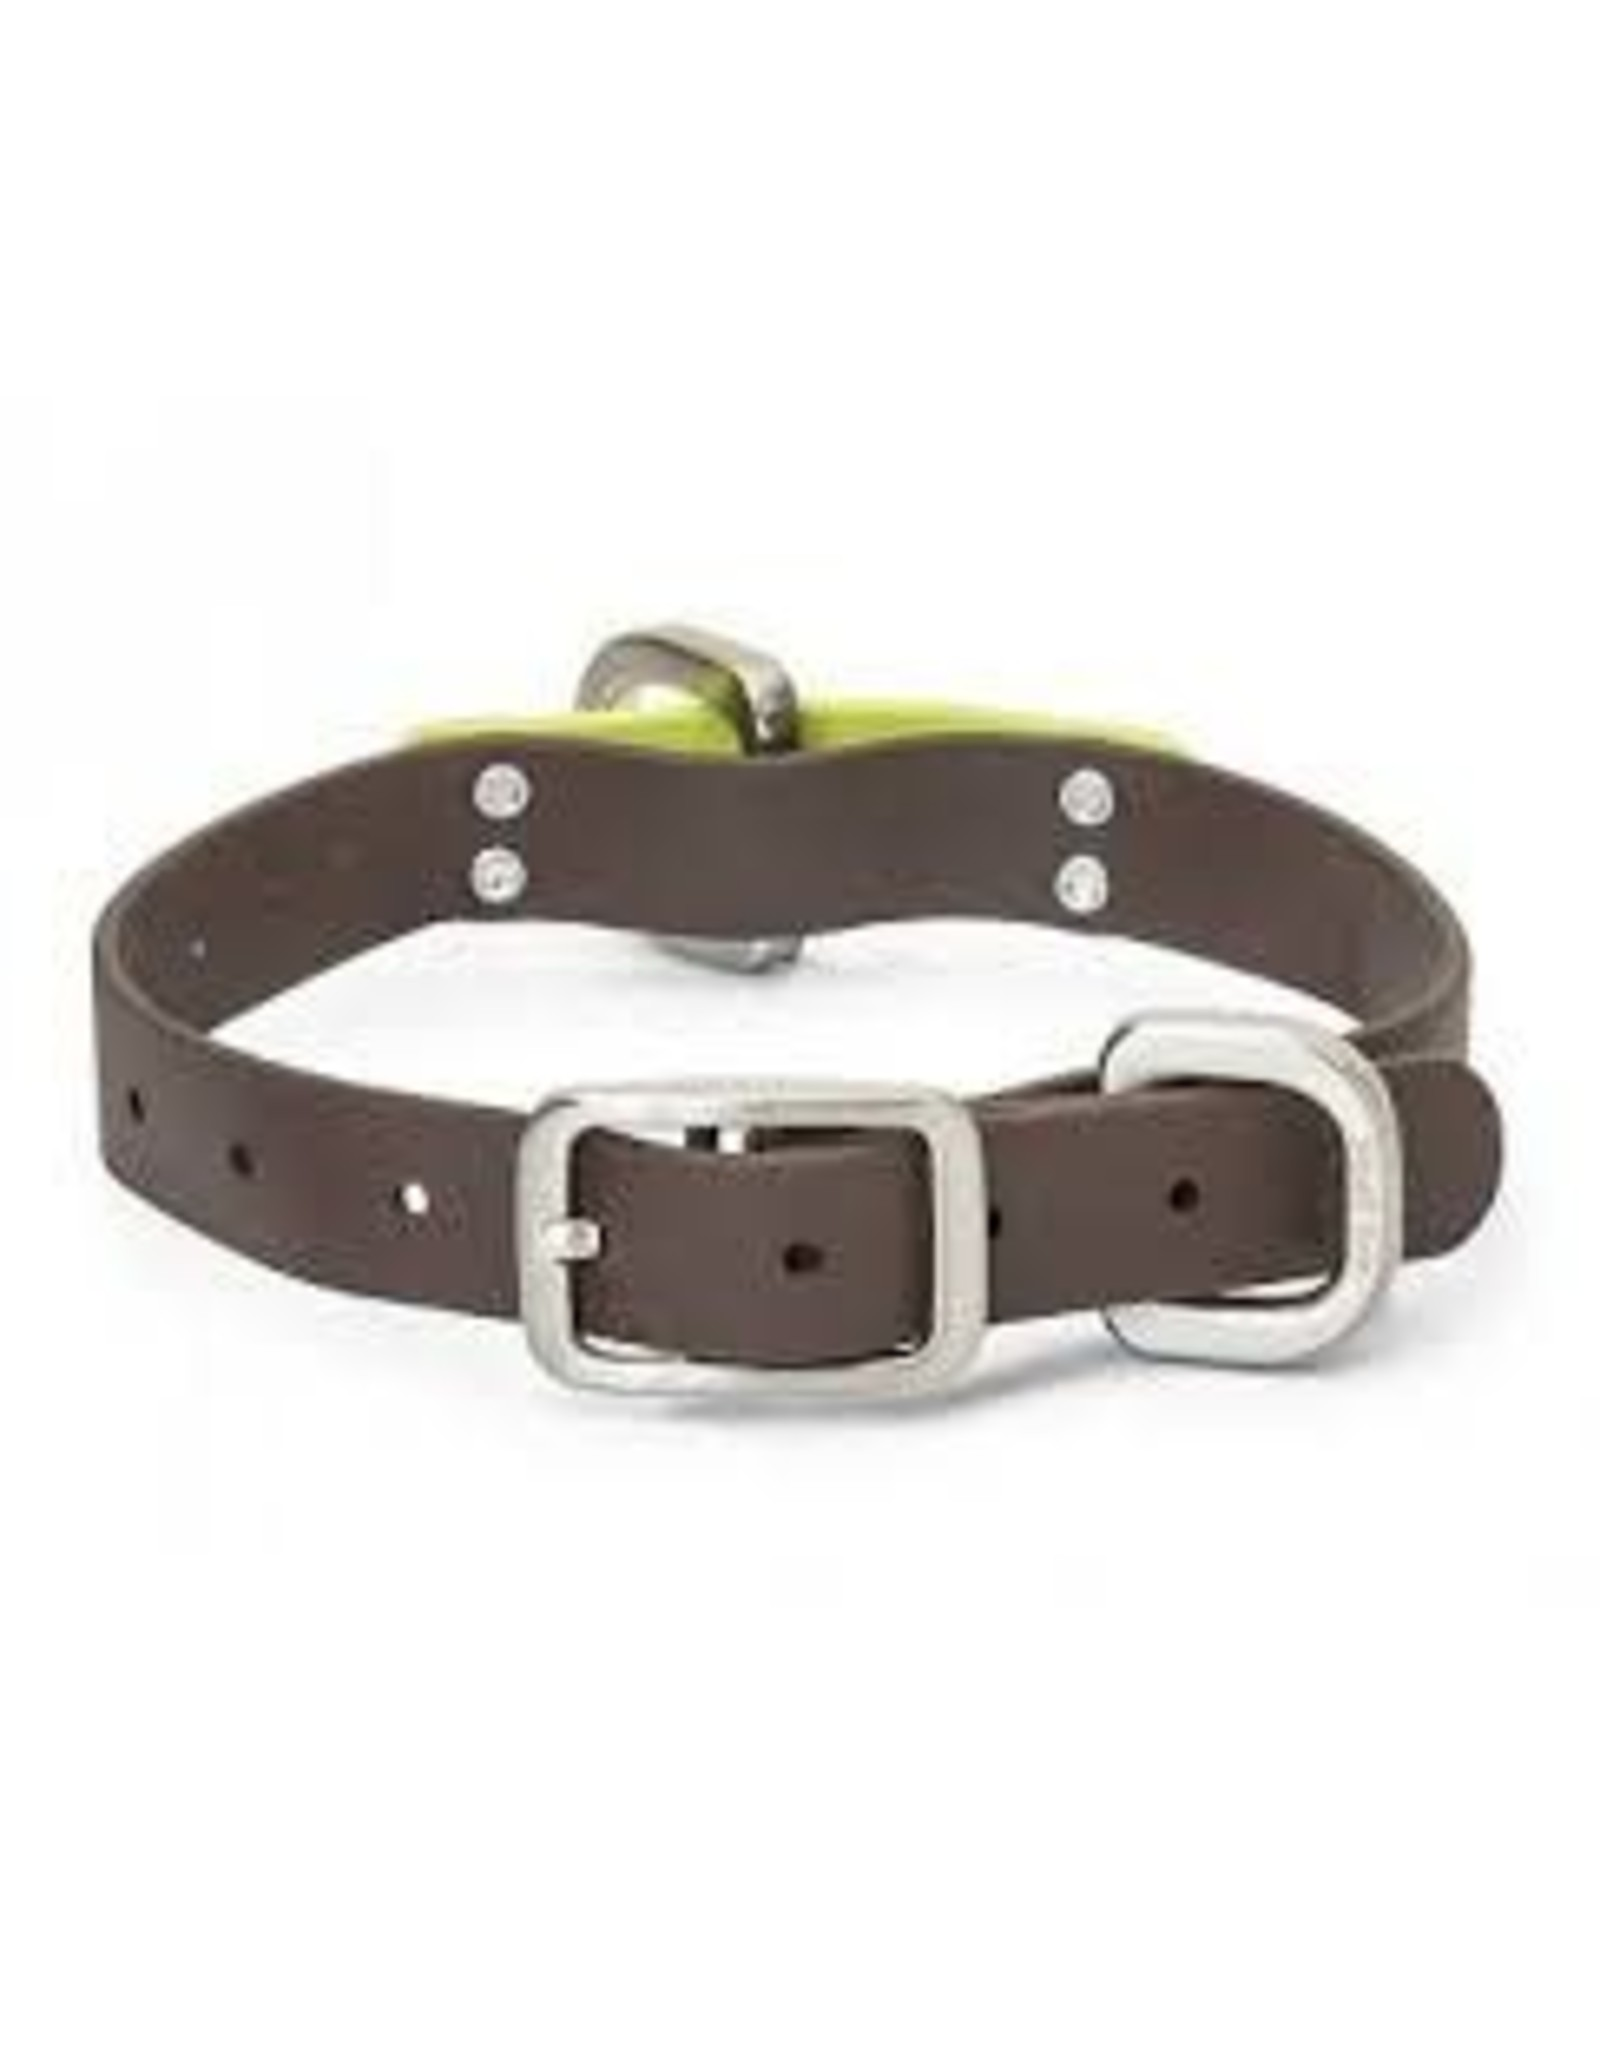 WEST PAW WEST PAW JAUNTS COLLAR LG-BROWN